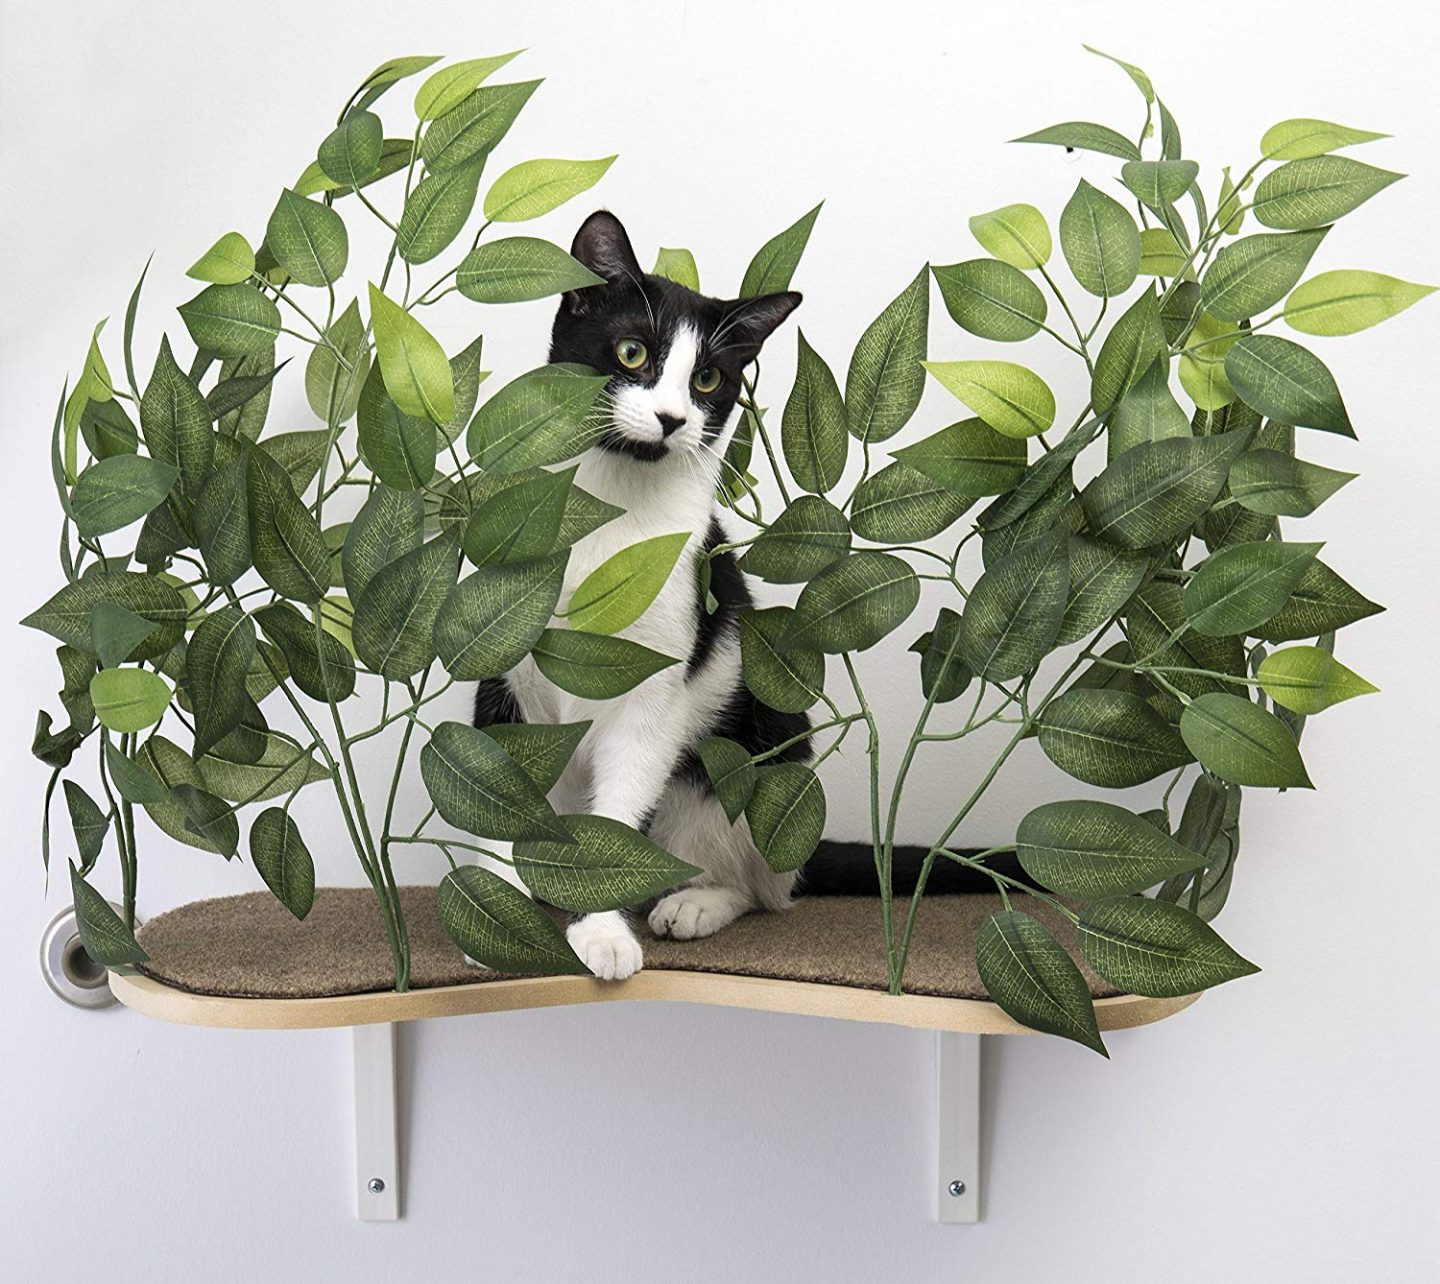 Cat Perch With Pretty Silk Leaves - This wall mounted cat perch really captured our heart. It really stands out among the other cat shelves featured in this post. Lots of PICTURES!